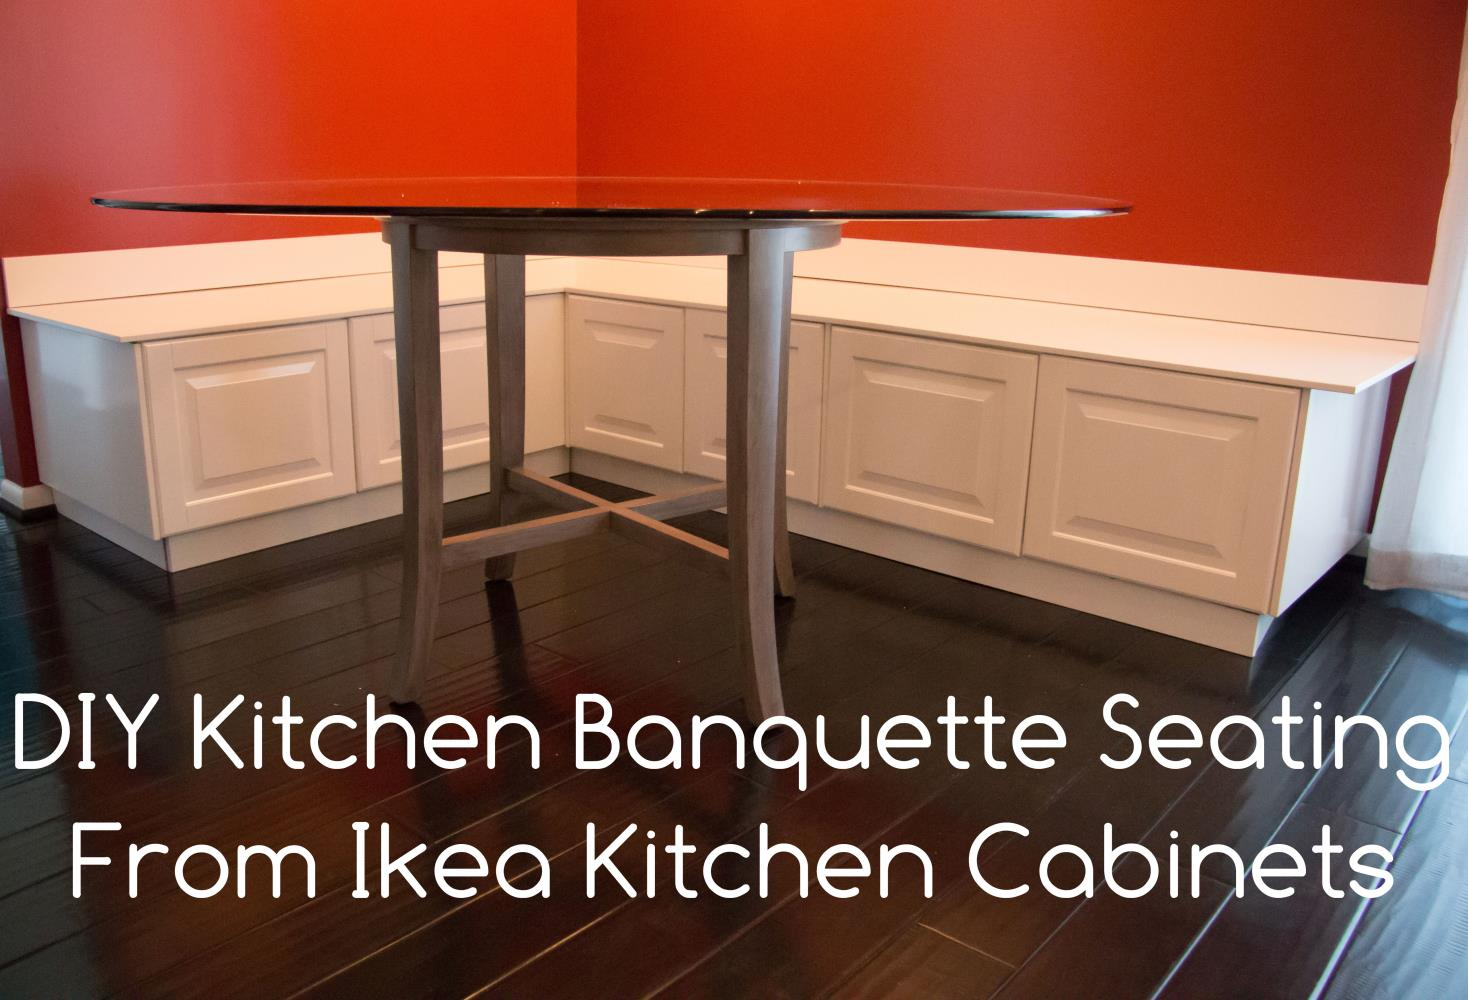 Merveilleux Ikea Diy Kitchen Bench Or Banquette Seating